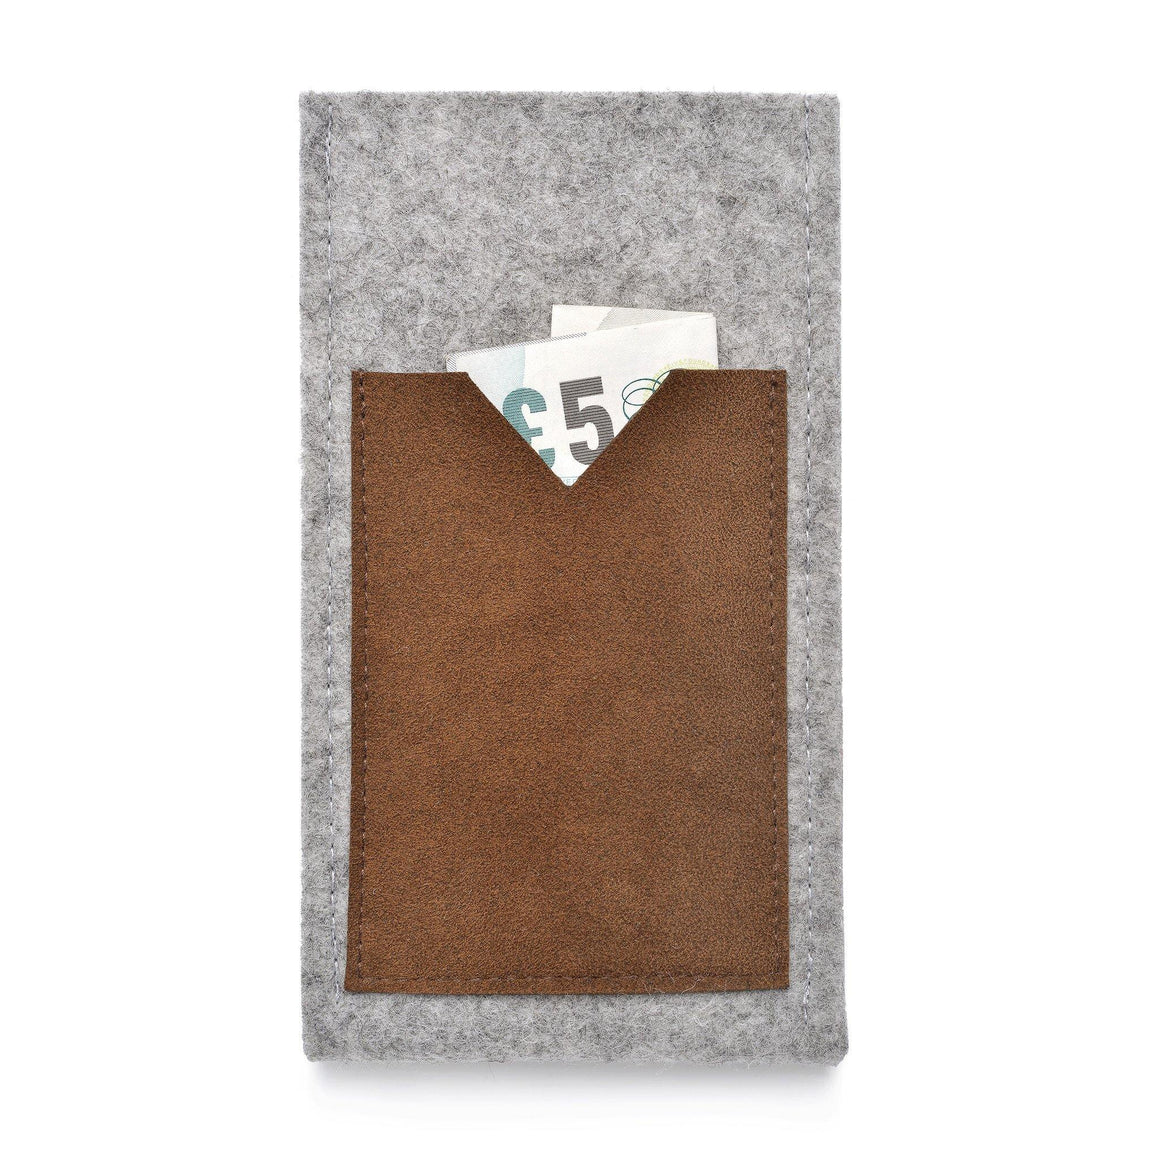 iPhone Wool Felt Cover Grey/Chestnut - Wrappers UK